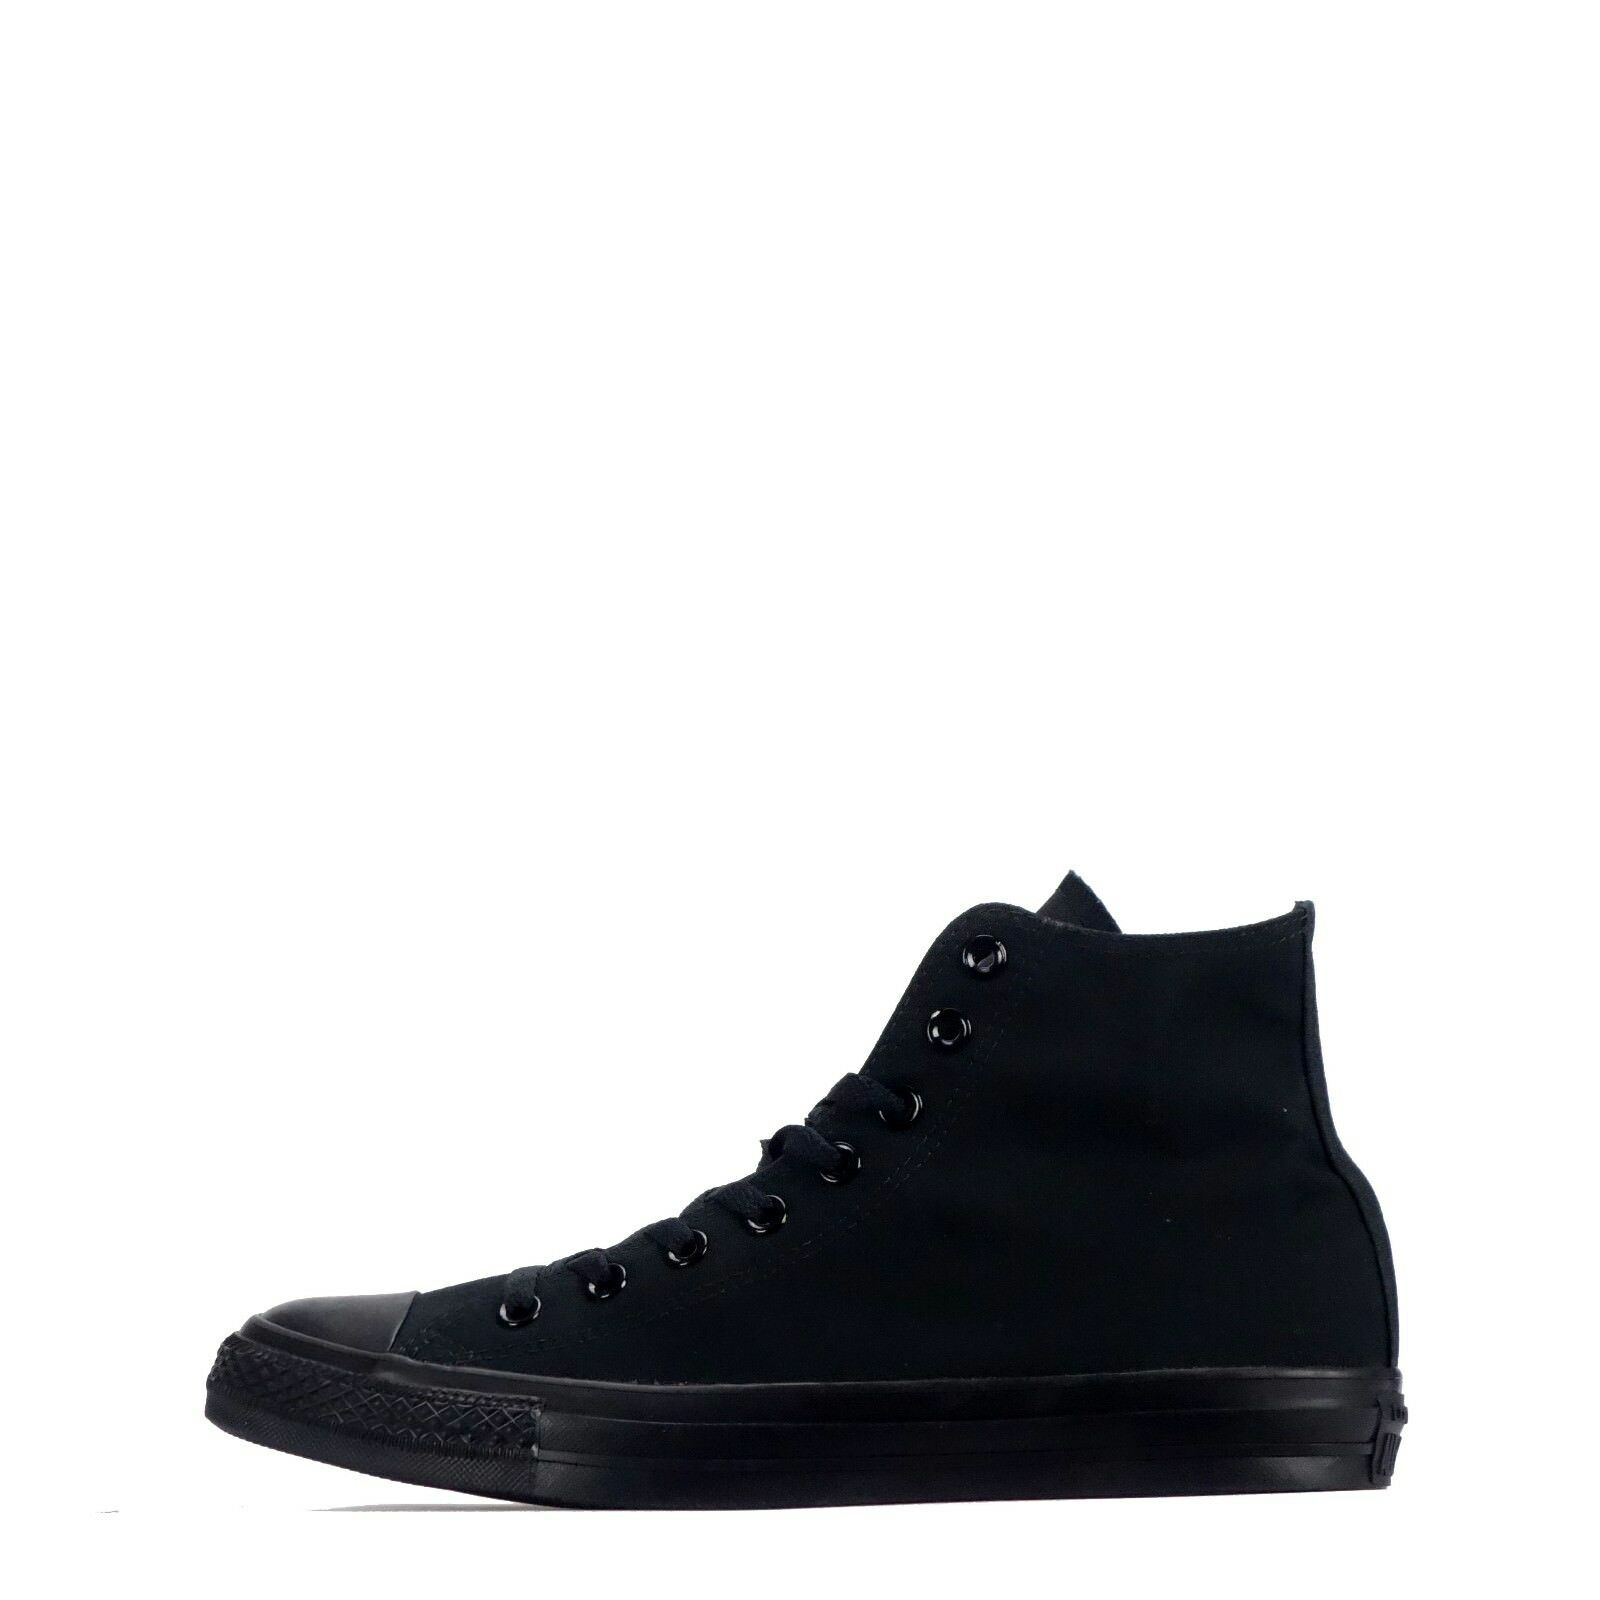 Converse Chuck up Taylor All Star Classic Hi Unisex Lace up Chuck Zapatos Plimsolls Negro 9a30b3